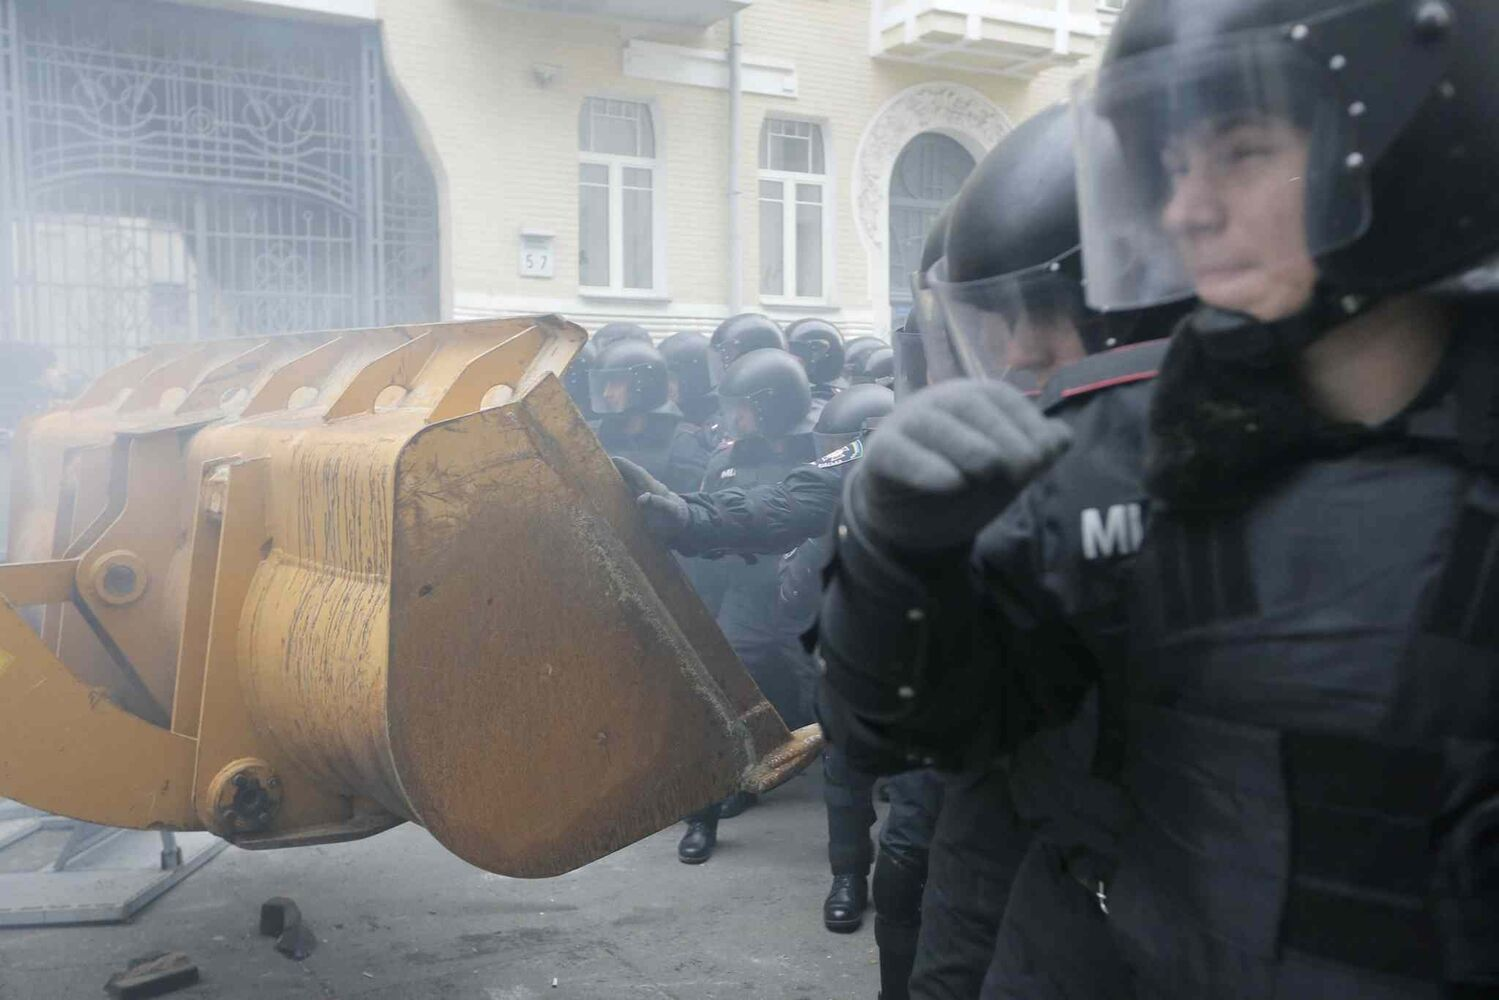 Protesters use an excavator during clashes with police at the Presidential office in Kiev, Ukraine, on Sunday. As many as 100,000 demonstrators chased away police to rally in the center of Ukraine's capital on Sunday, defying a government ban on protests on Independence Square, in the biggest show of anger over the president's refusal to sign an agreement with the European Union. (Efrem Lukatsky / The Associated Press)